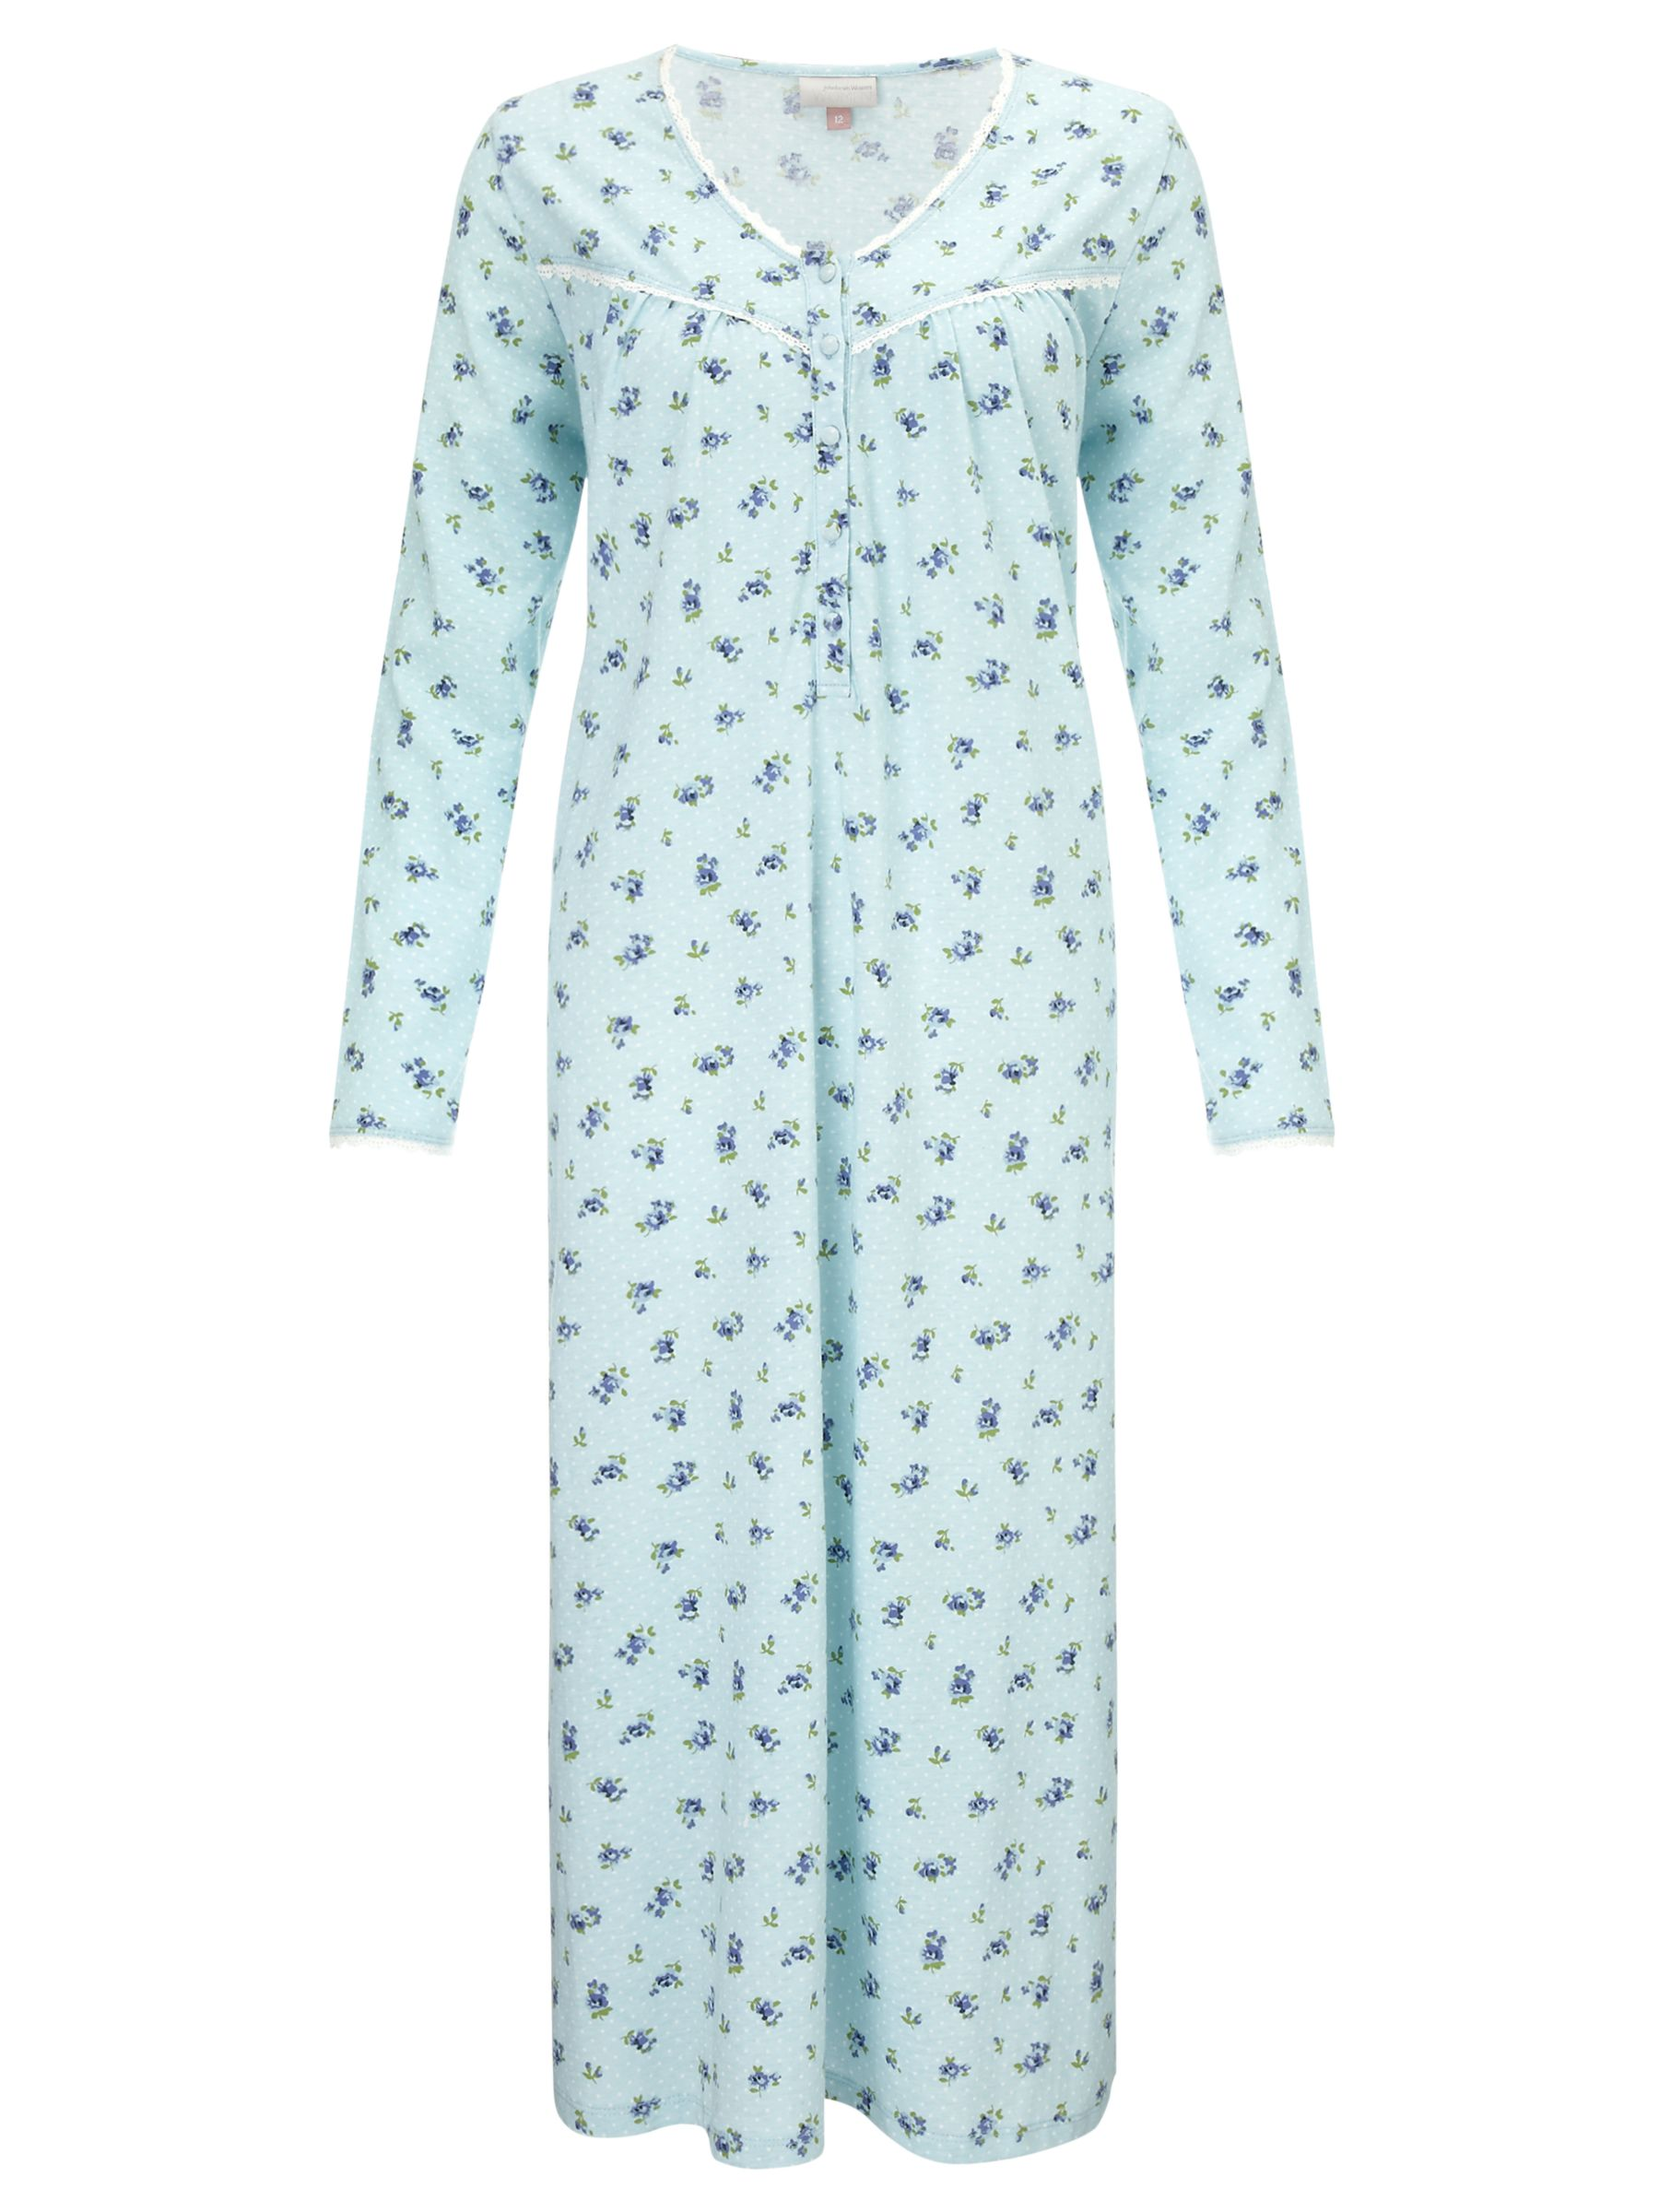 John Lewis Bunty Floral Nightdress, Duck Egg